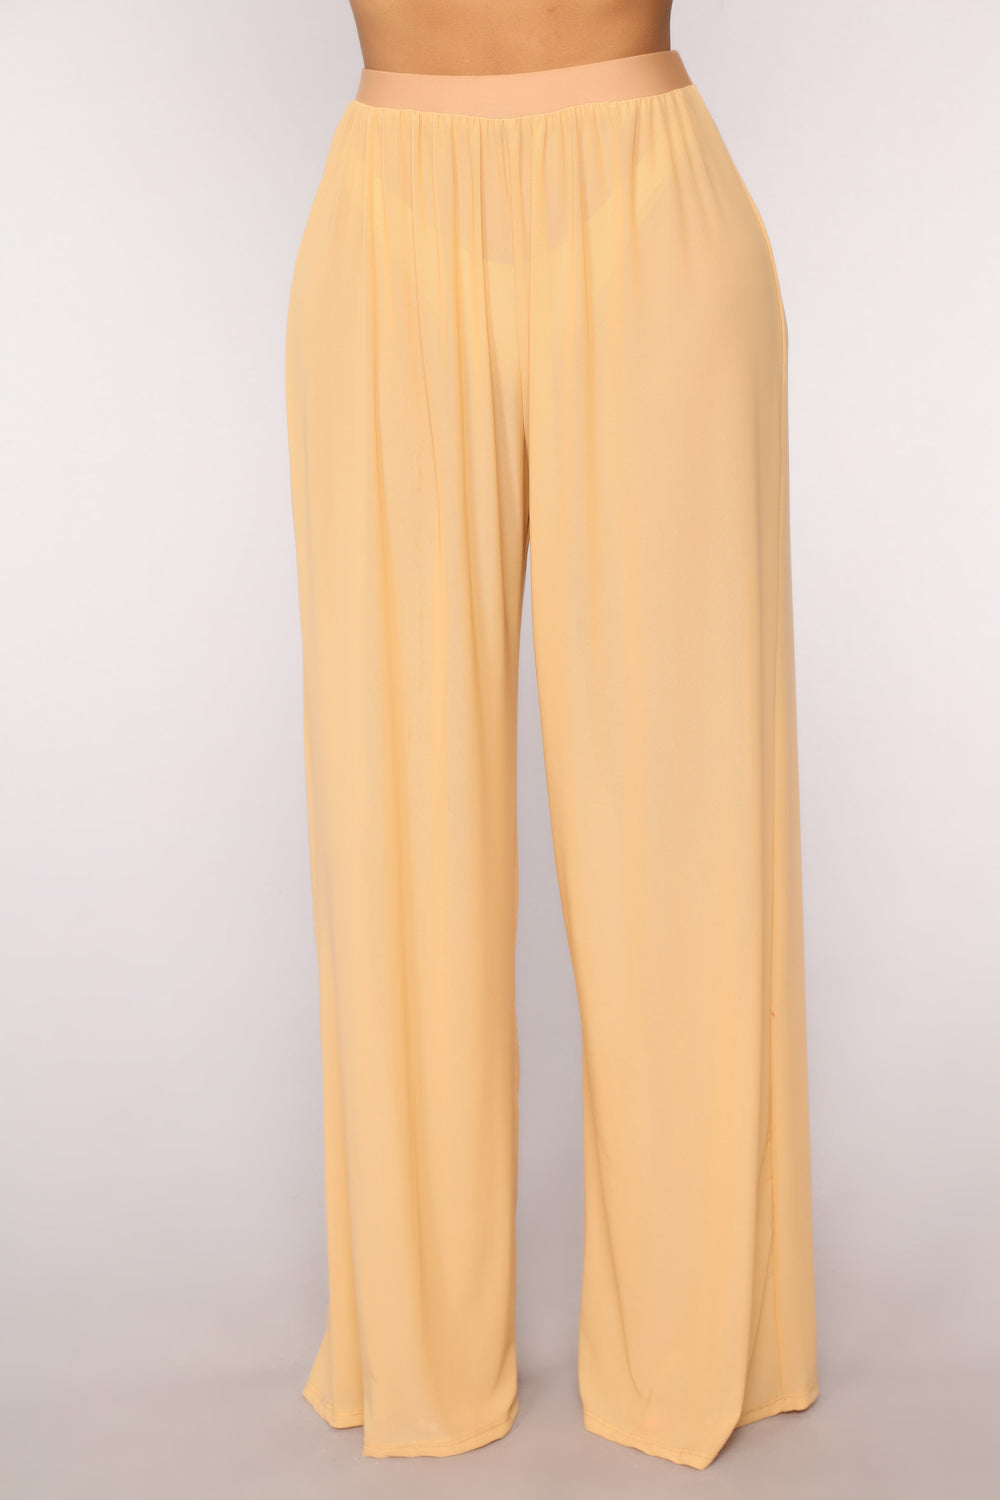 Dare To Cover Coverup Pant - Beige